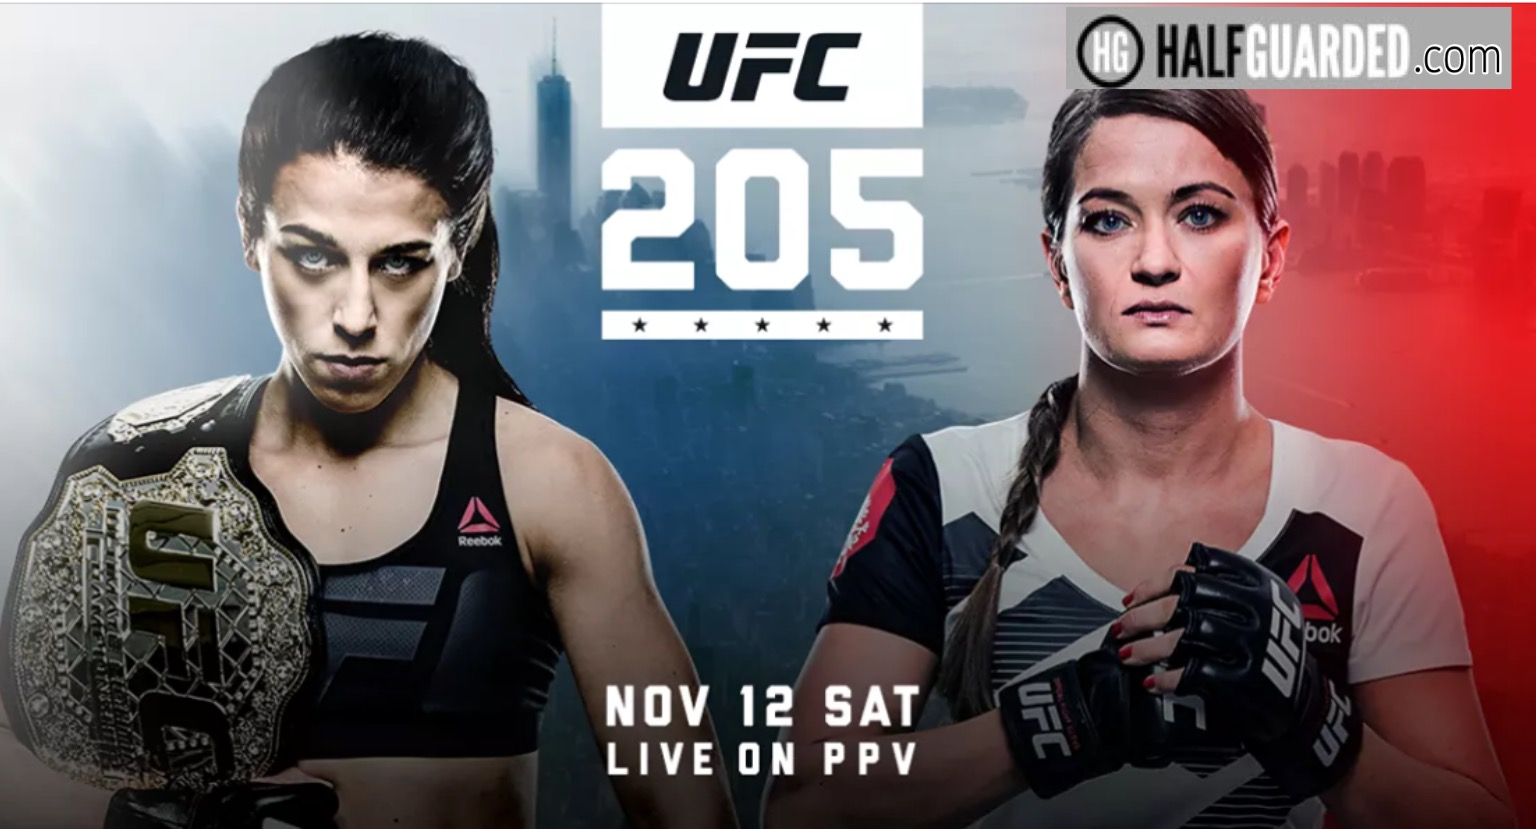 UFC 205 RESULTS - UFC 205 LIVE FREE STREAM of consciousness ONLINE - UFC MSG DEBUT Results - UFC New York Debut Results